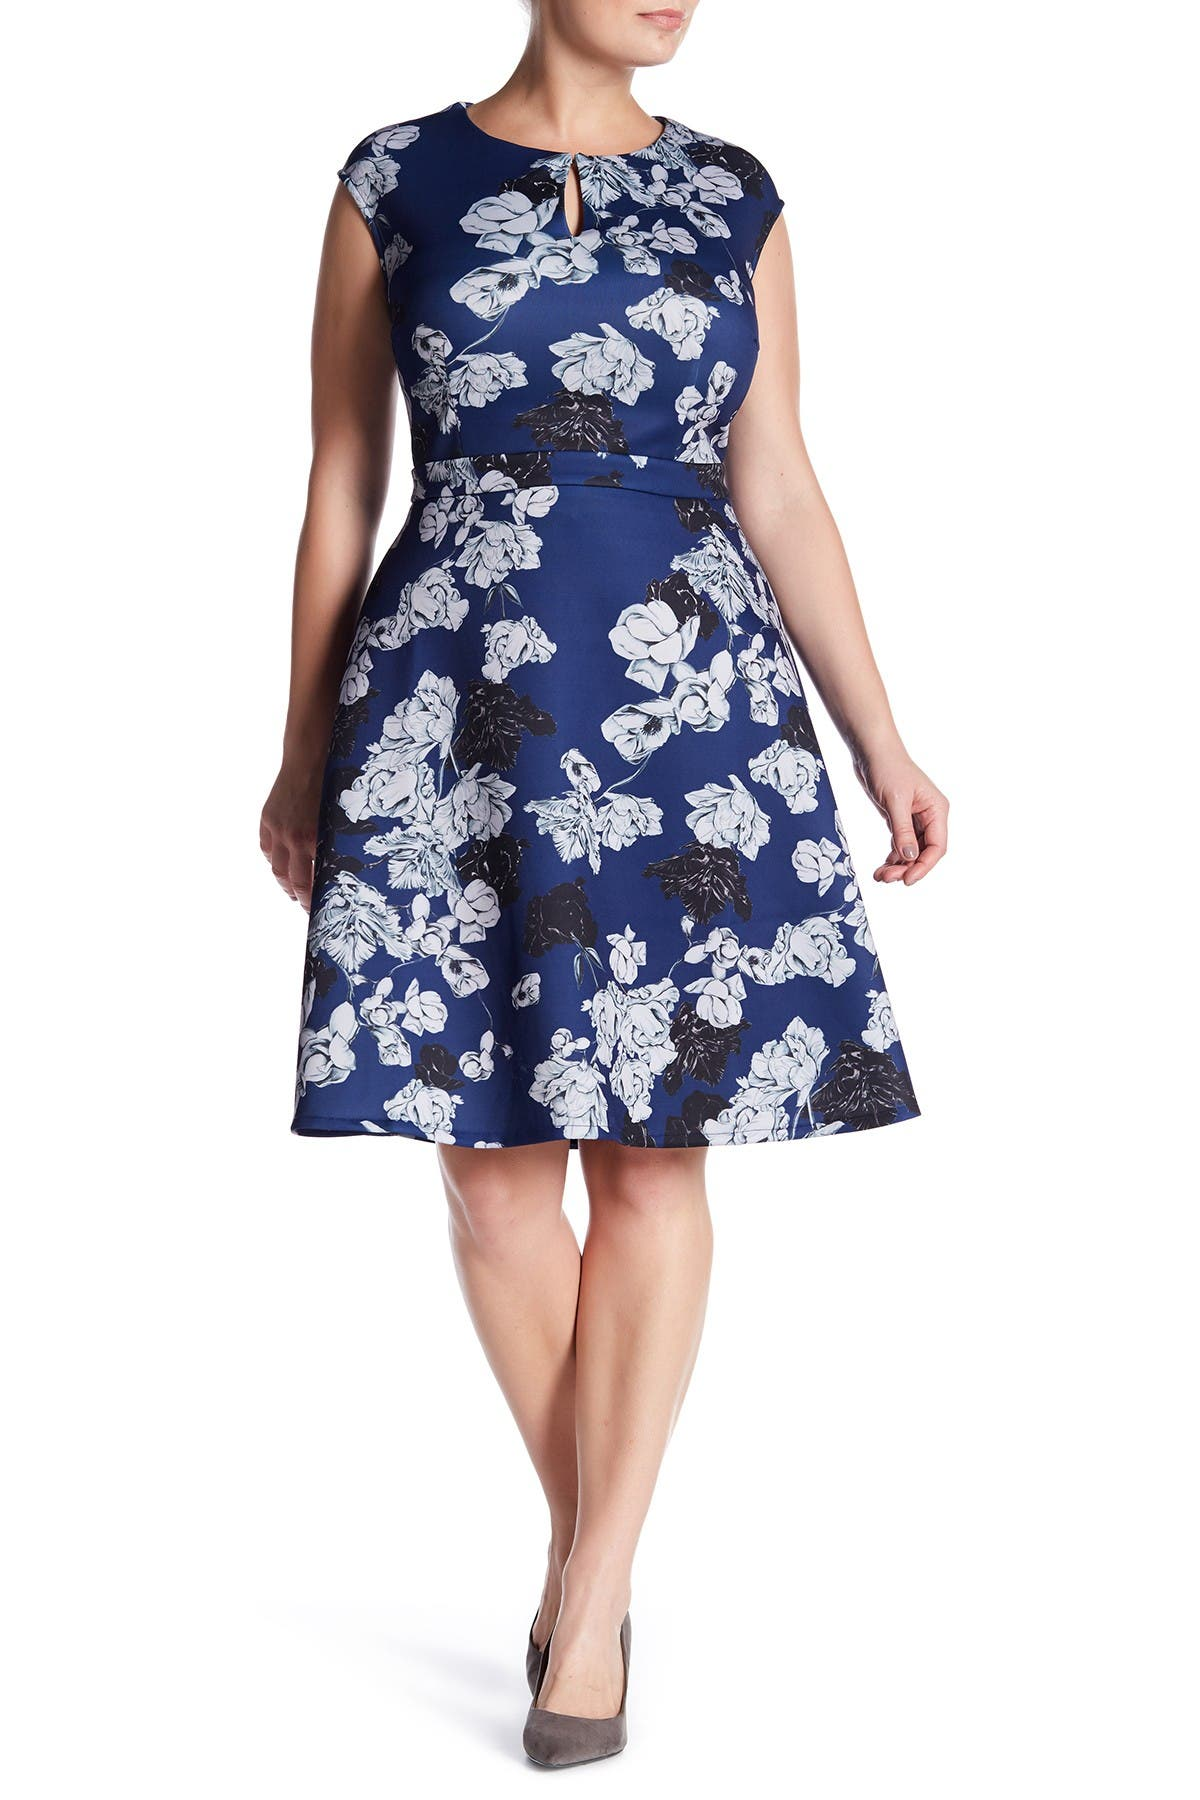 Image of Alexia Admor Floral Keyhole Fit & Flare Dress